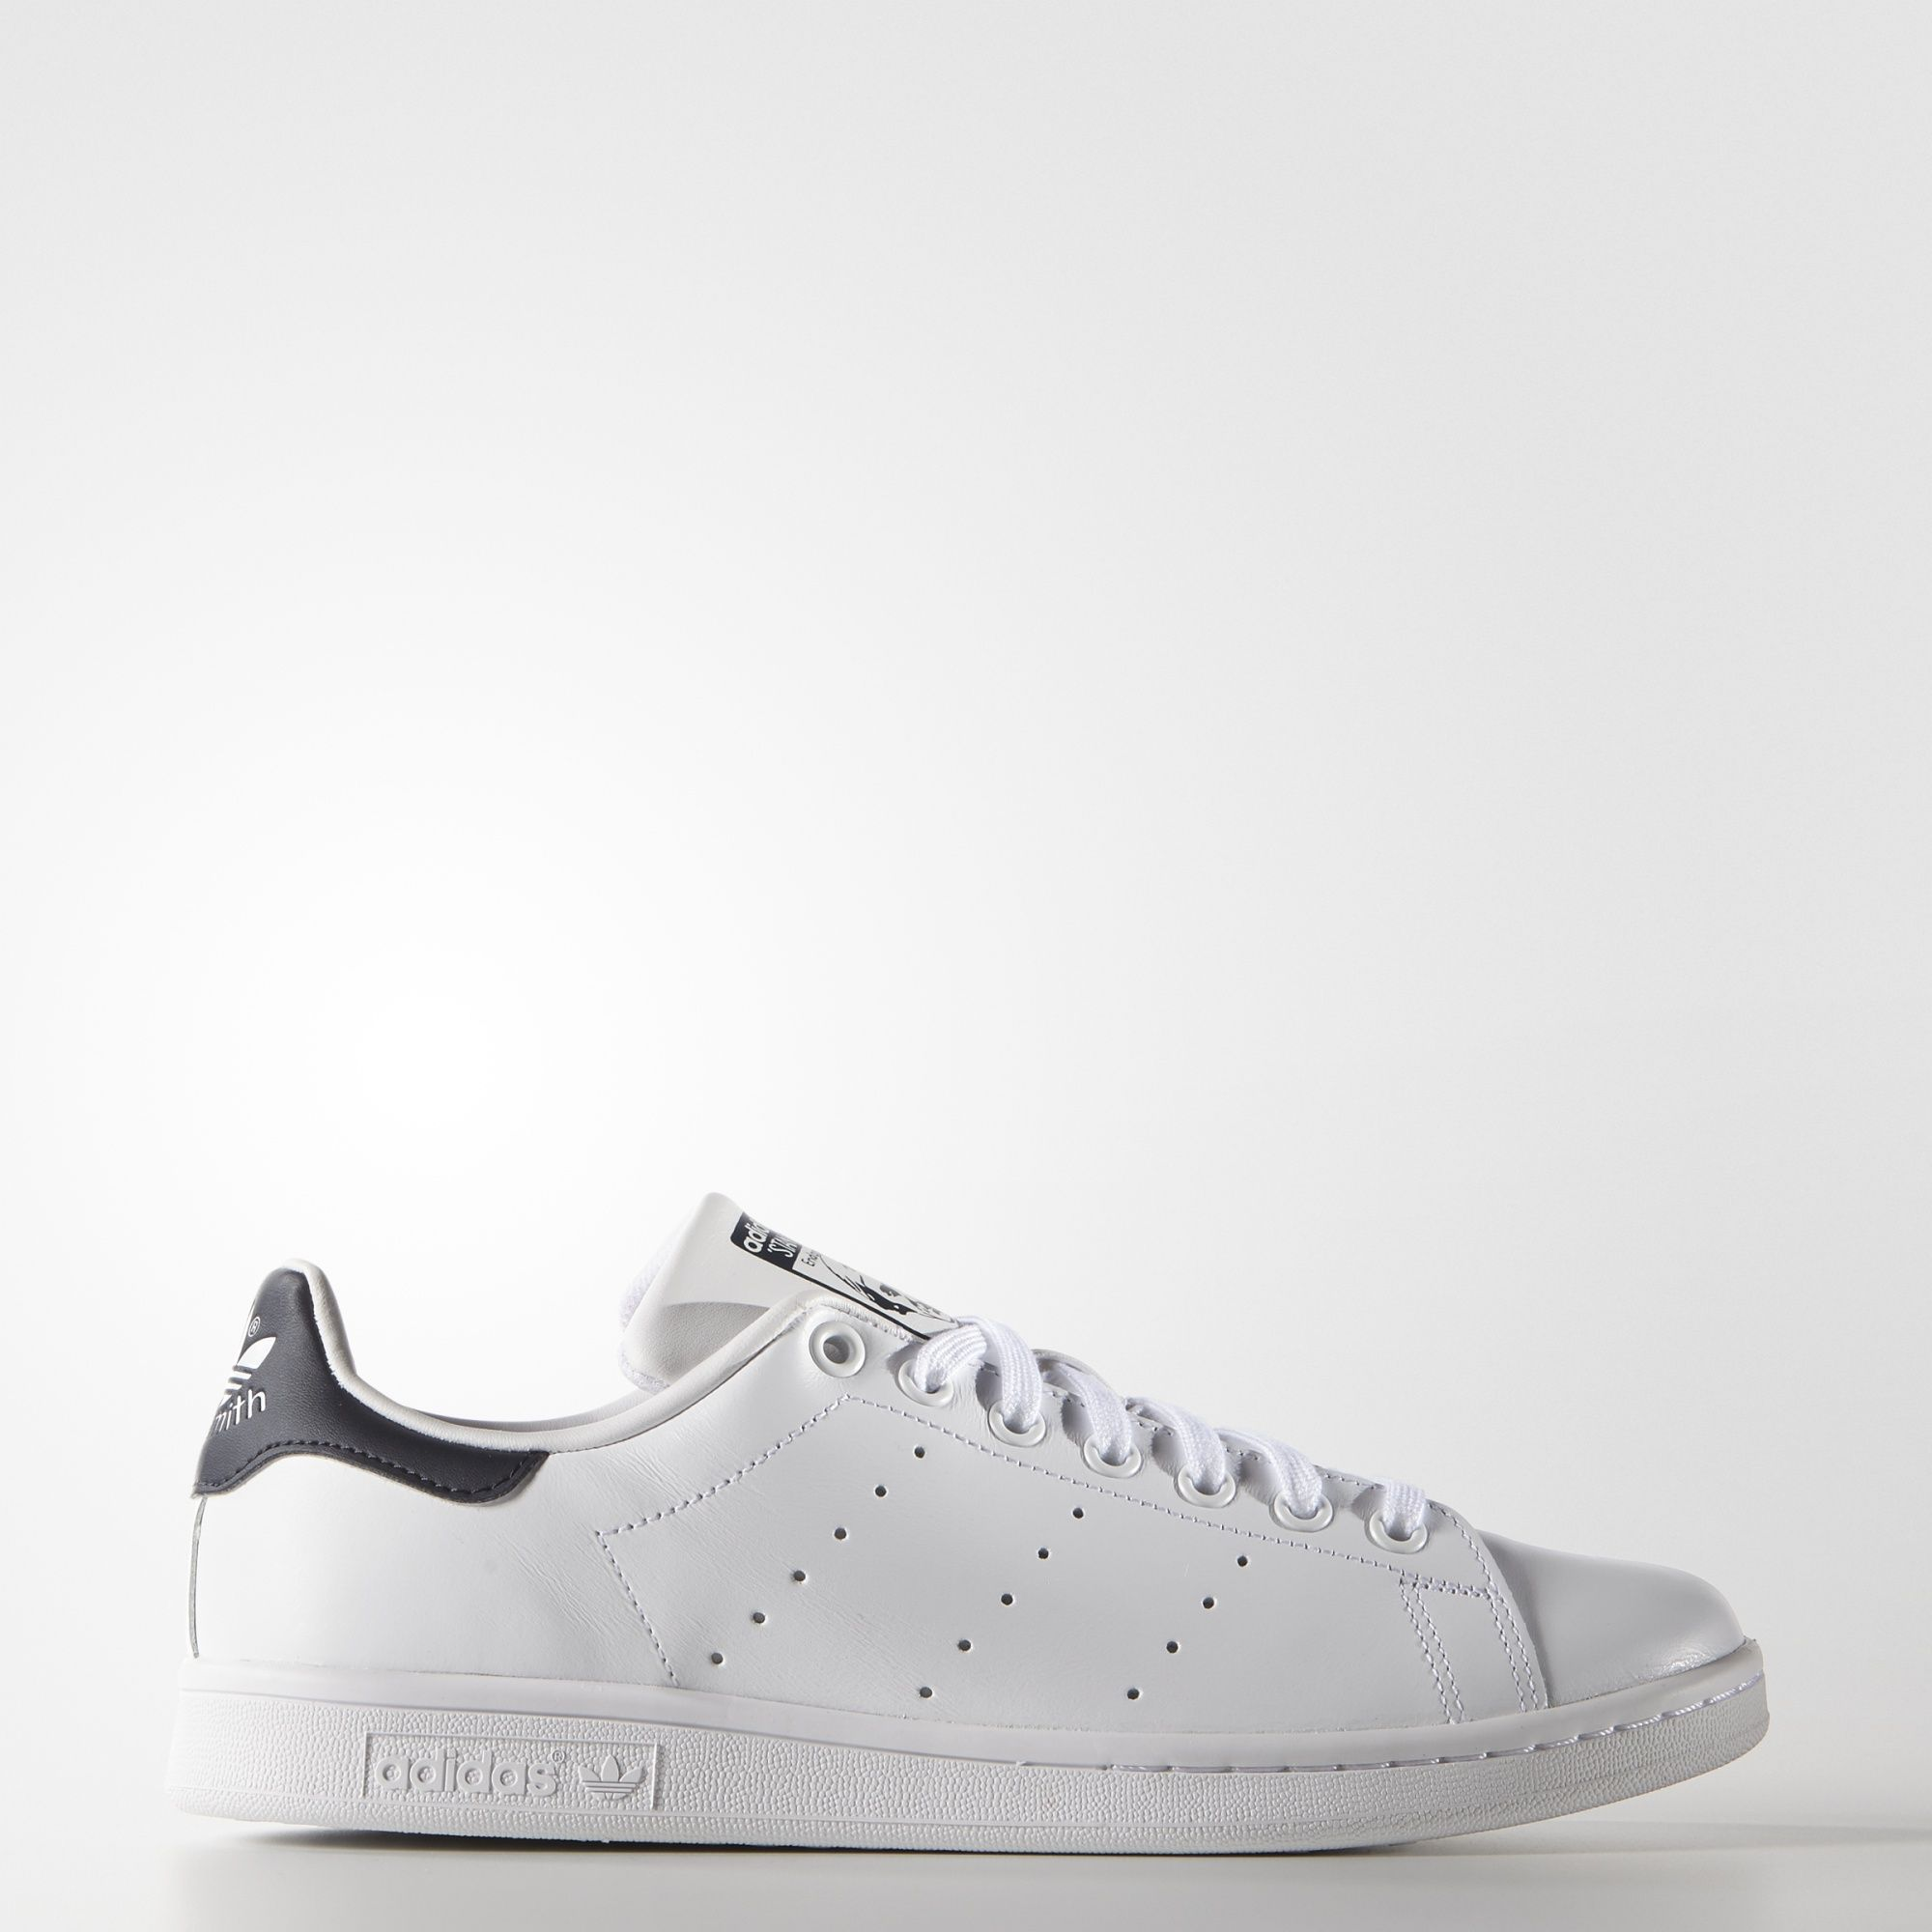 Stan Smith Shoes | Stan smith shoes, Adidas stan smith